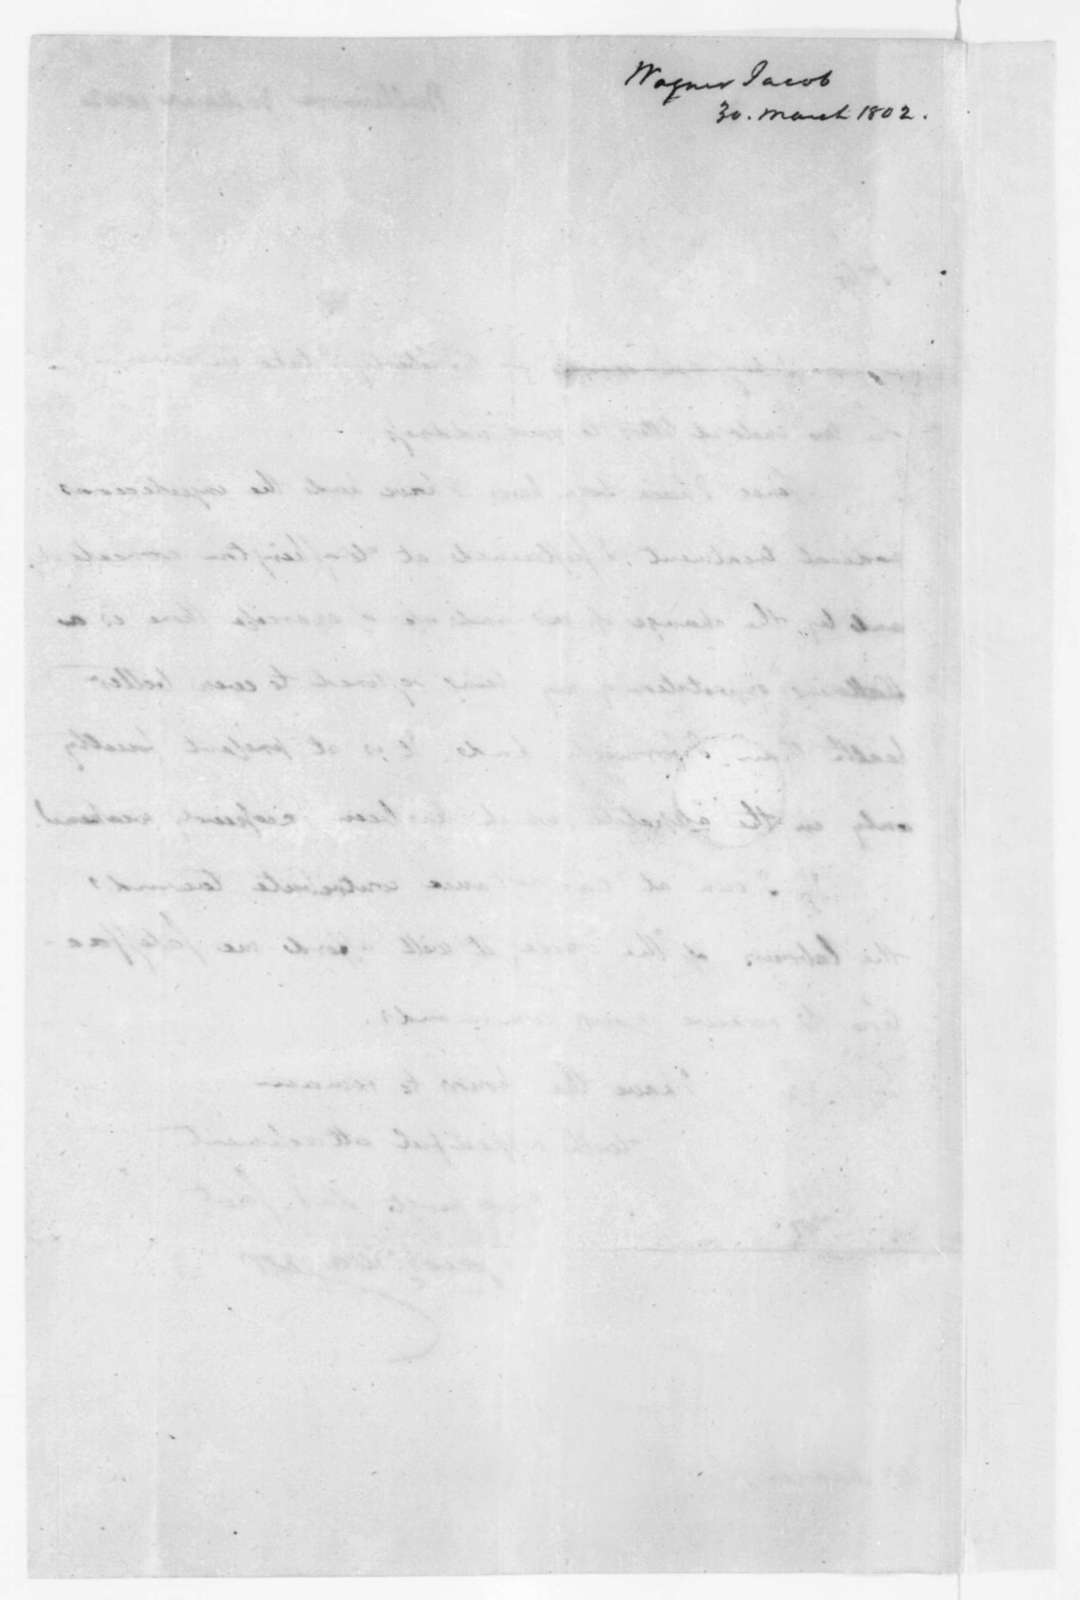 Jacob Wagner to James Madison, March 30, 1802.